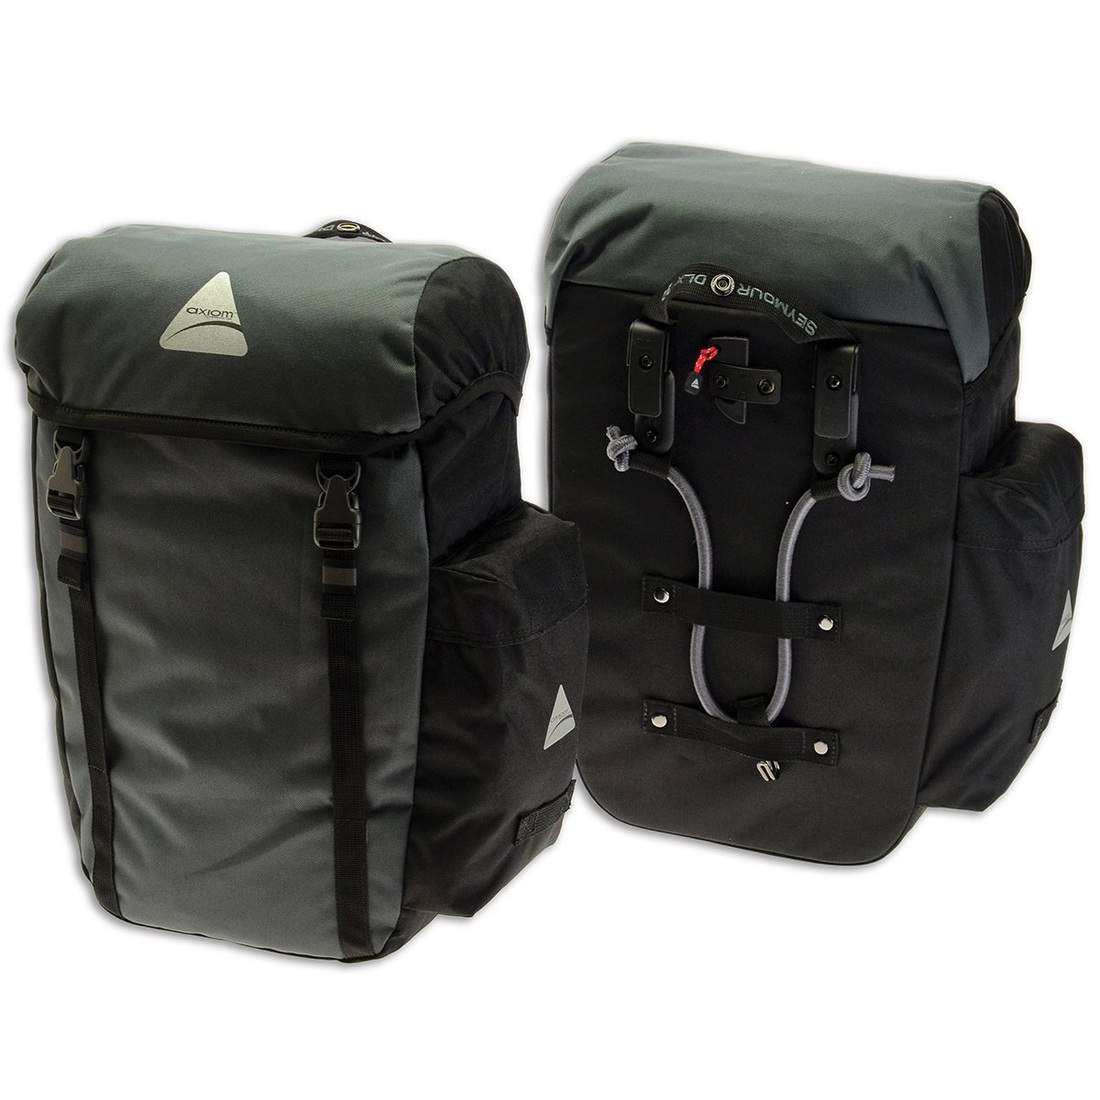 Picture of Axiom Seymour DLX 20 Panniers for bike touring and commuting